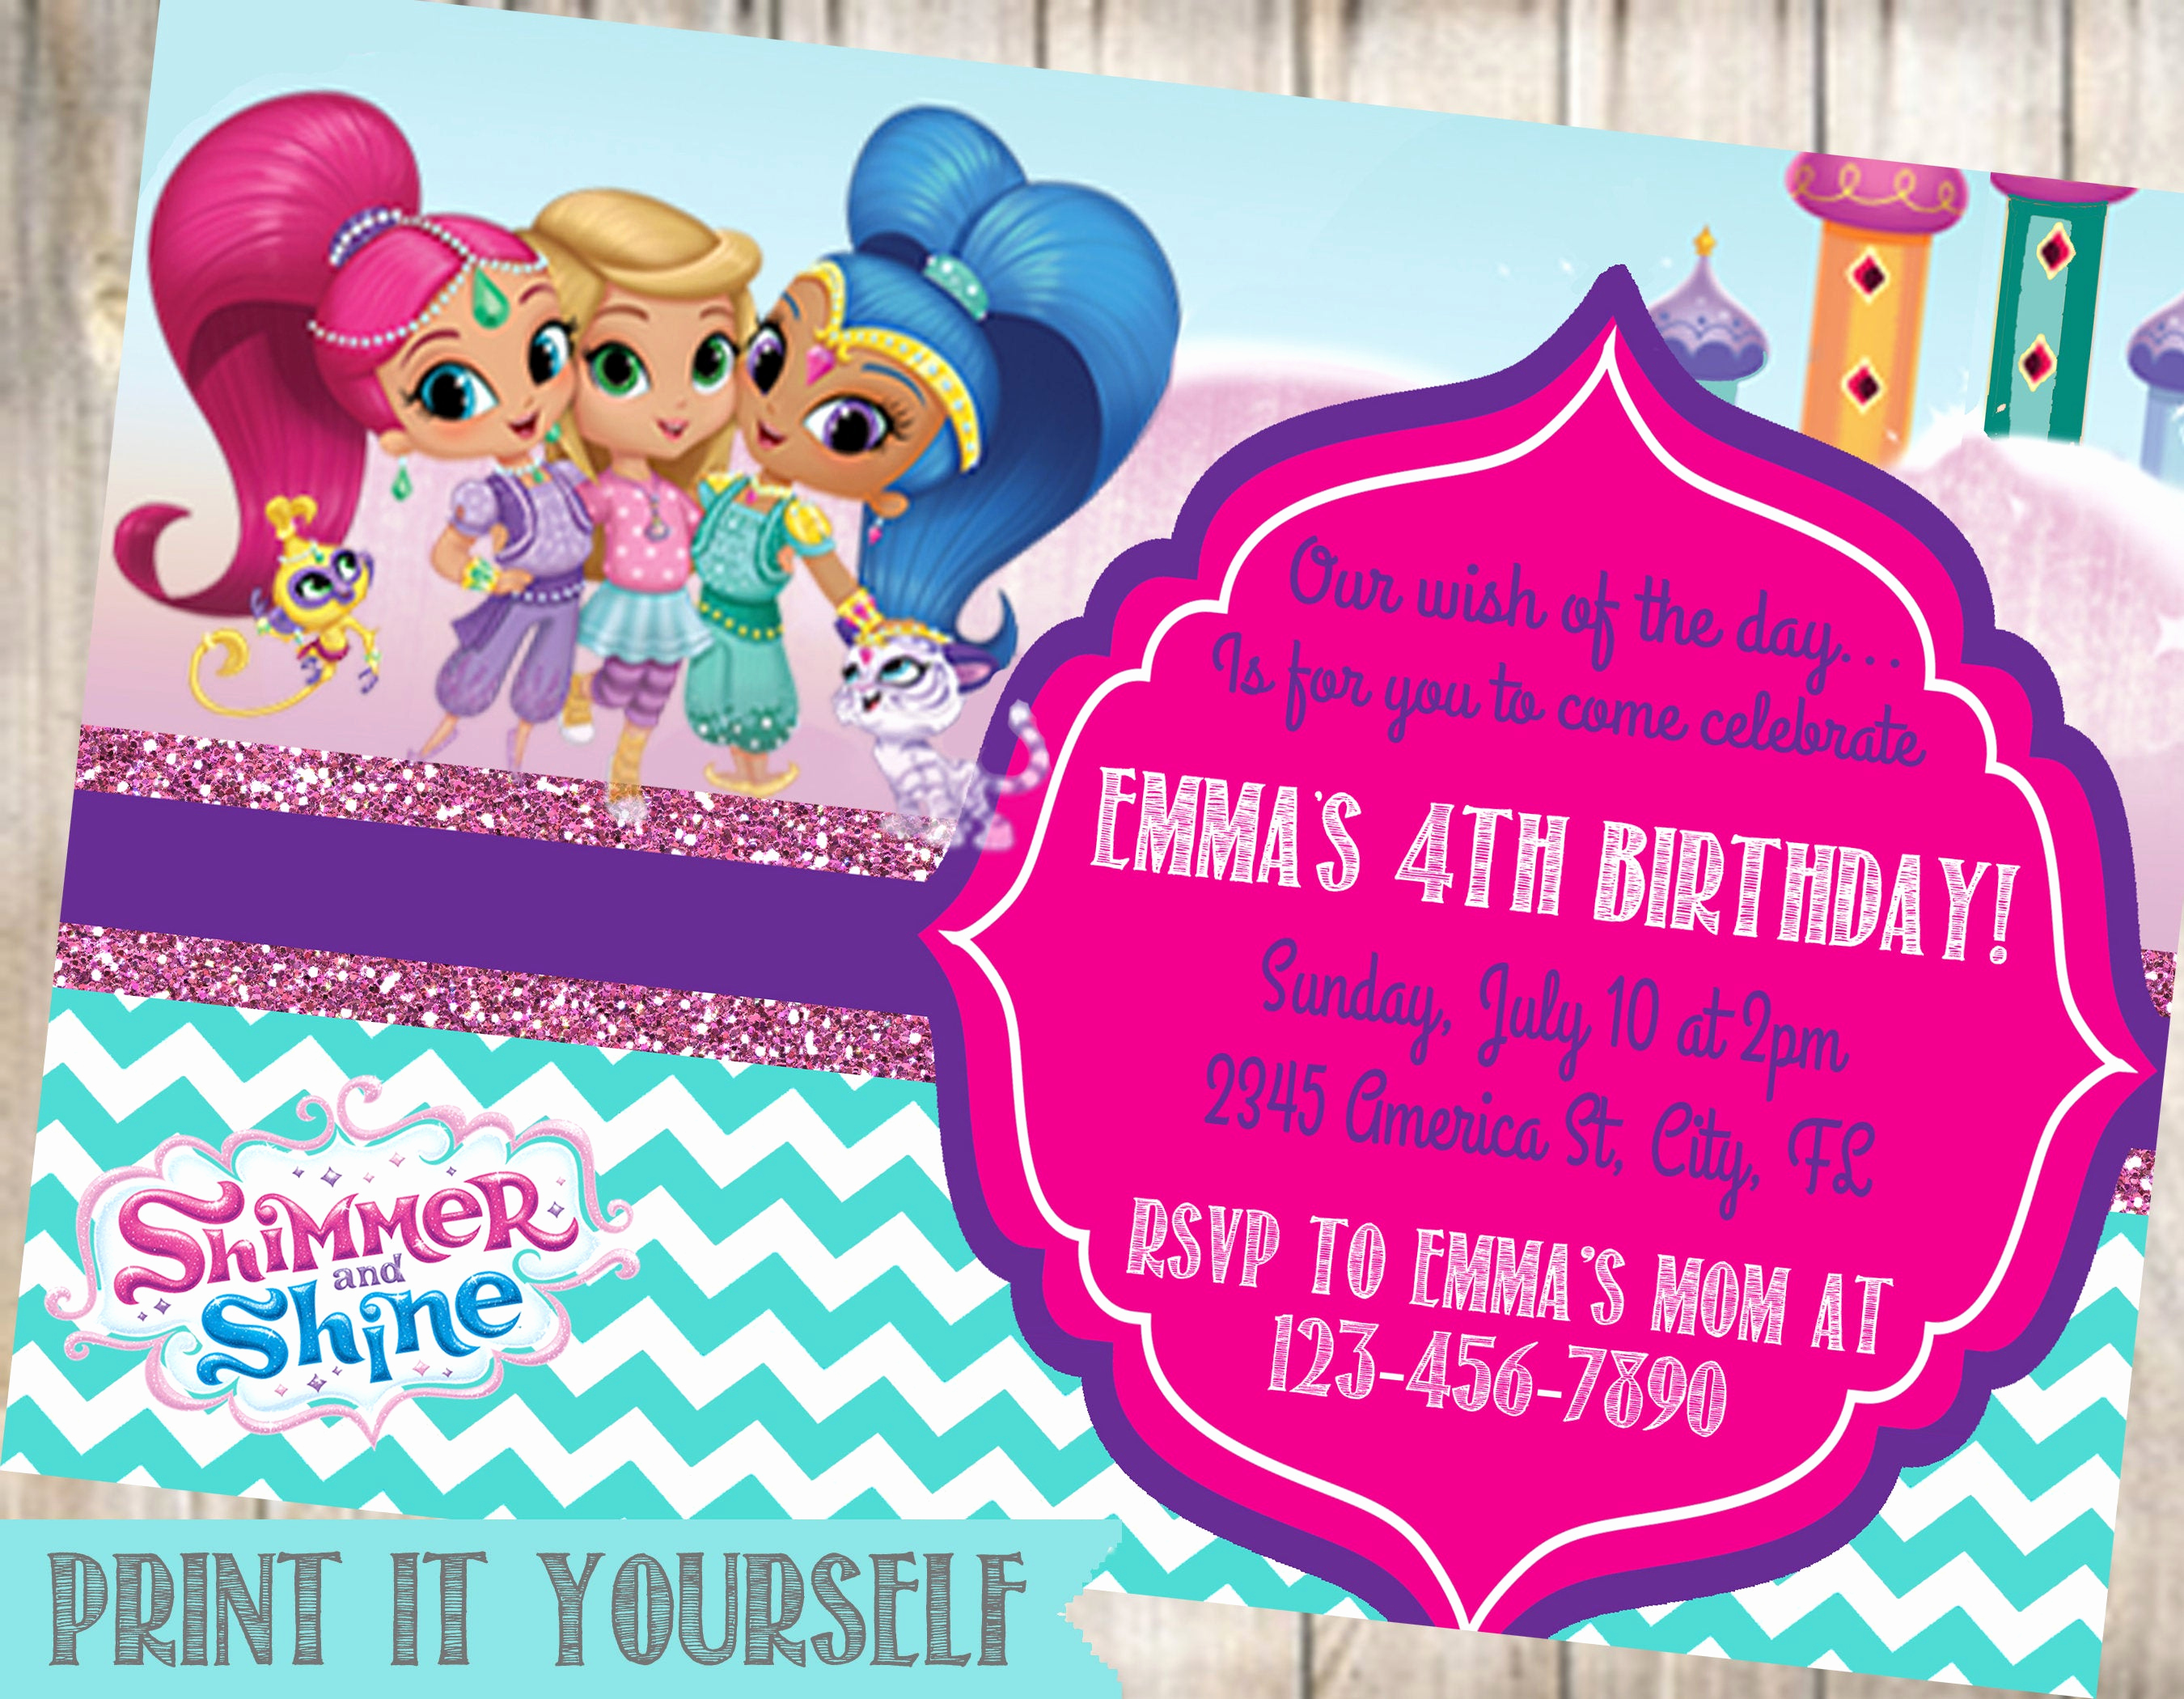 Shimmer and Shine Birthday Invitation Unique Shimmer and Shine Birthday Party Invitation Shimmer and